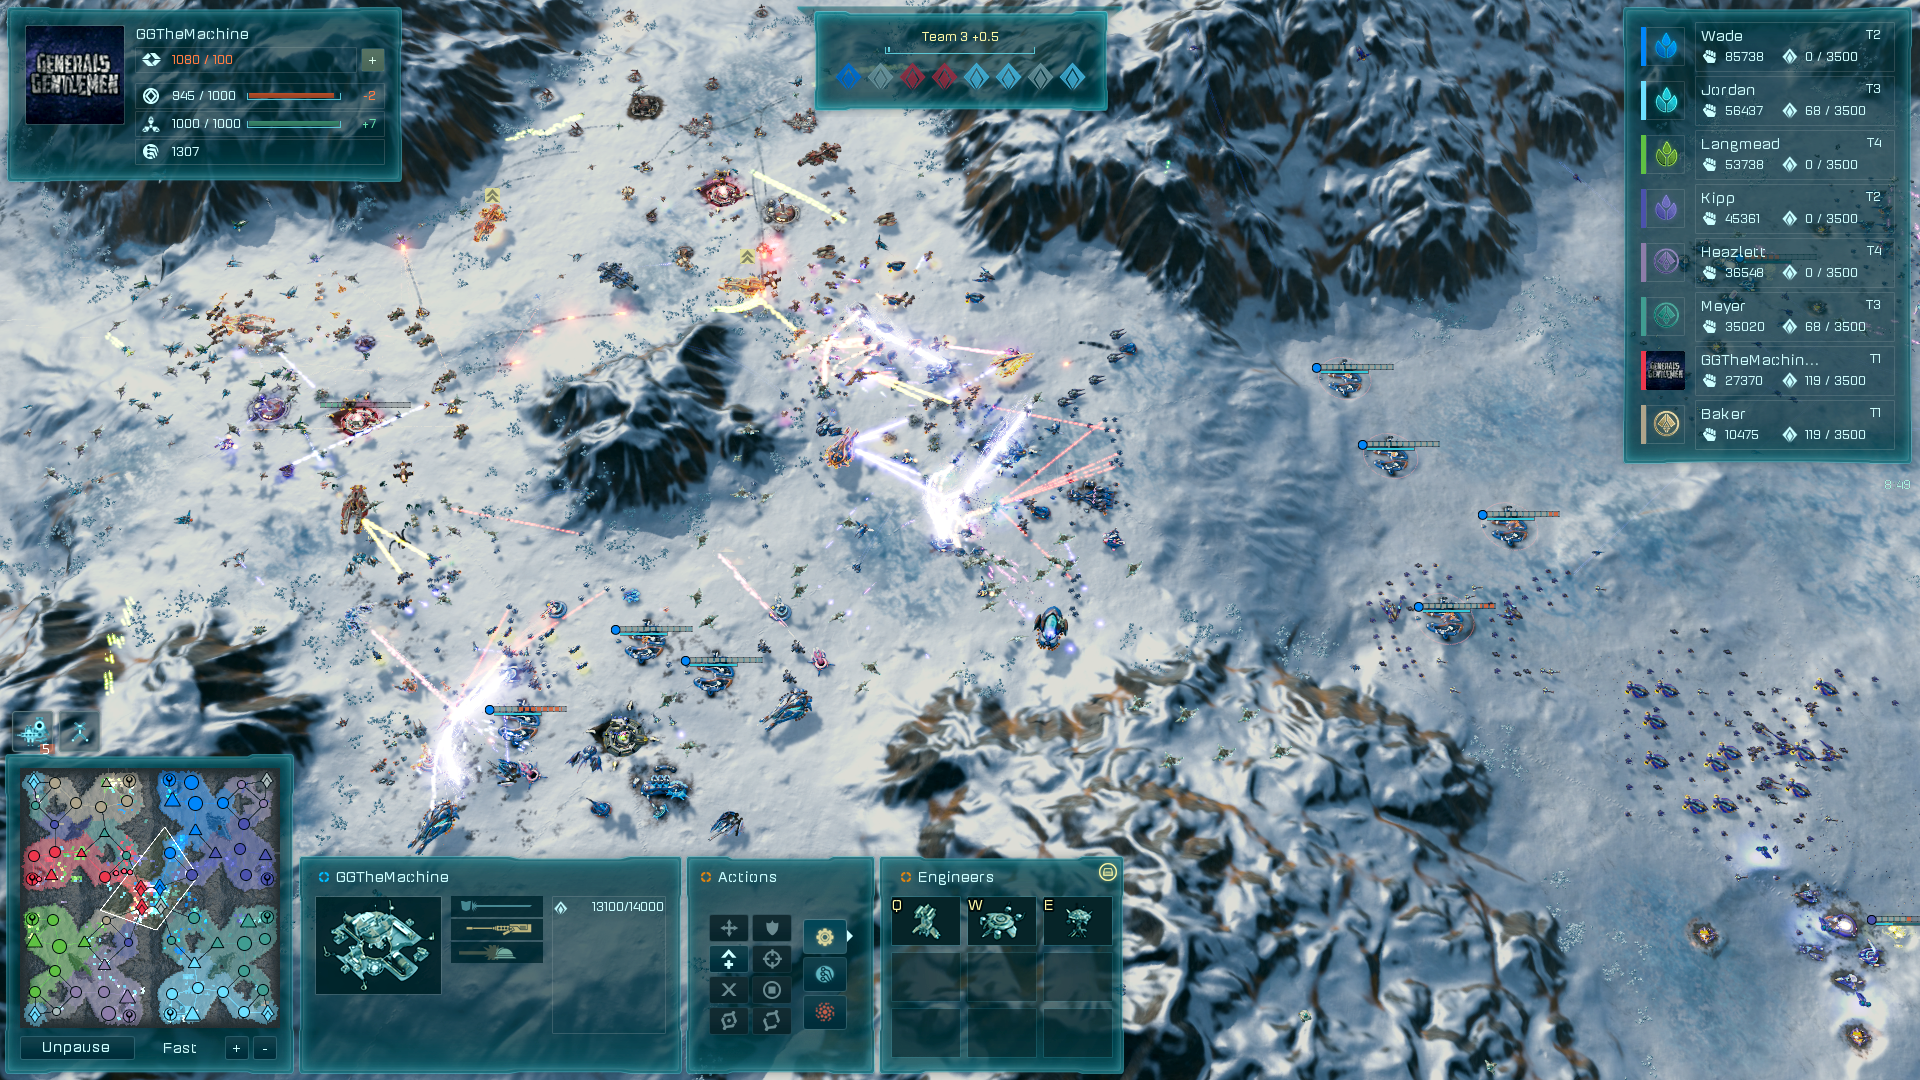 Massive v22 update for ashes of the singularity escalation is now youve been asking and here it is the game replays remove the fog of war so that you can see absolutely everything that went on during your game gumiabroncs Gallery